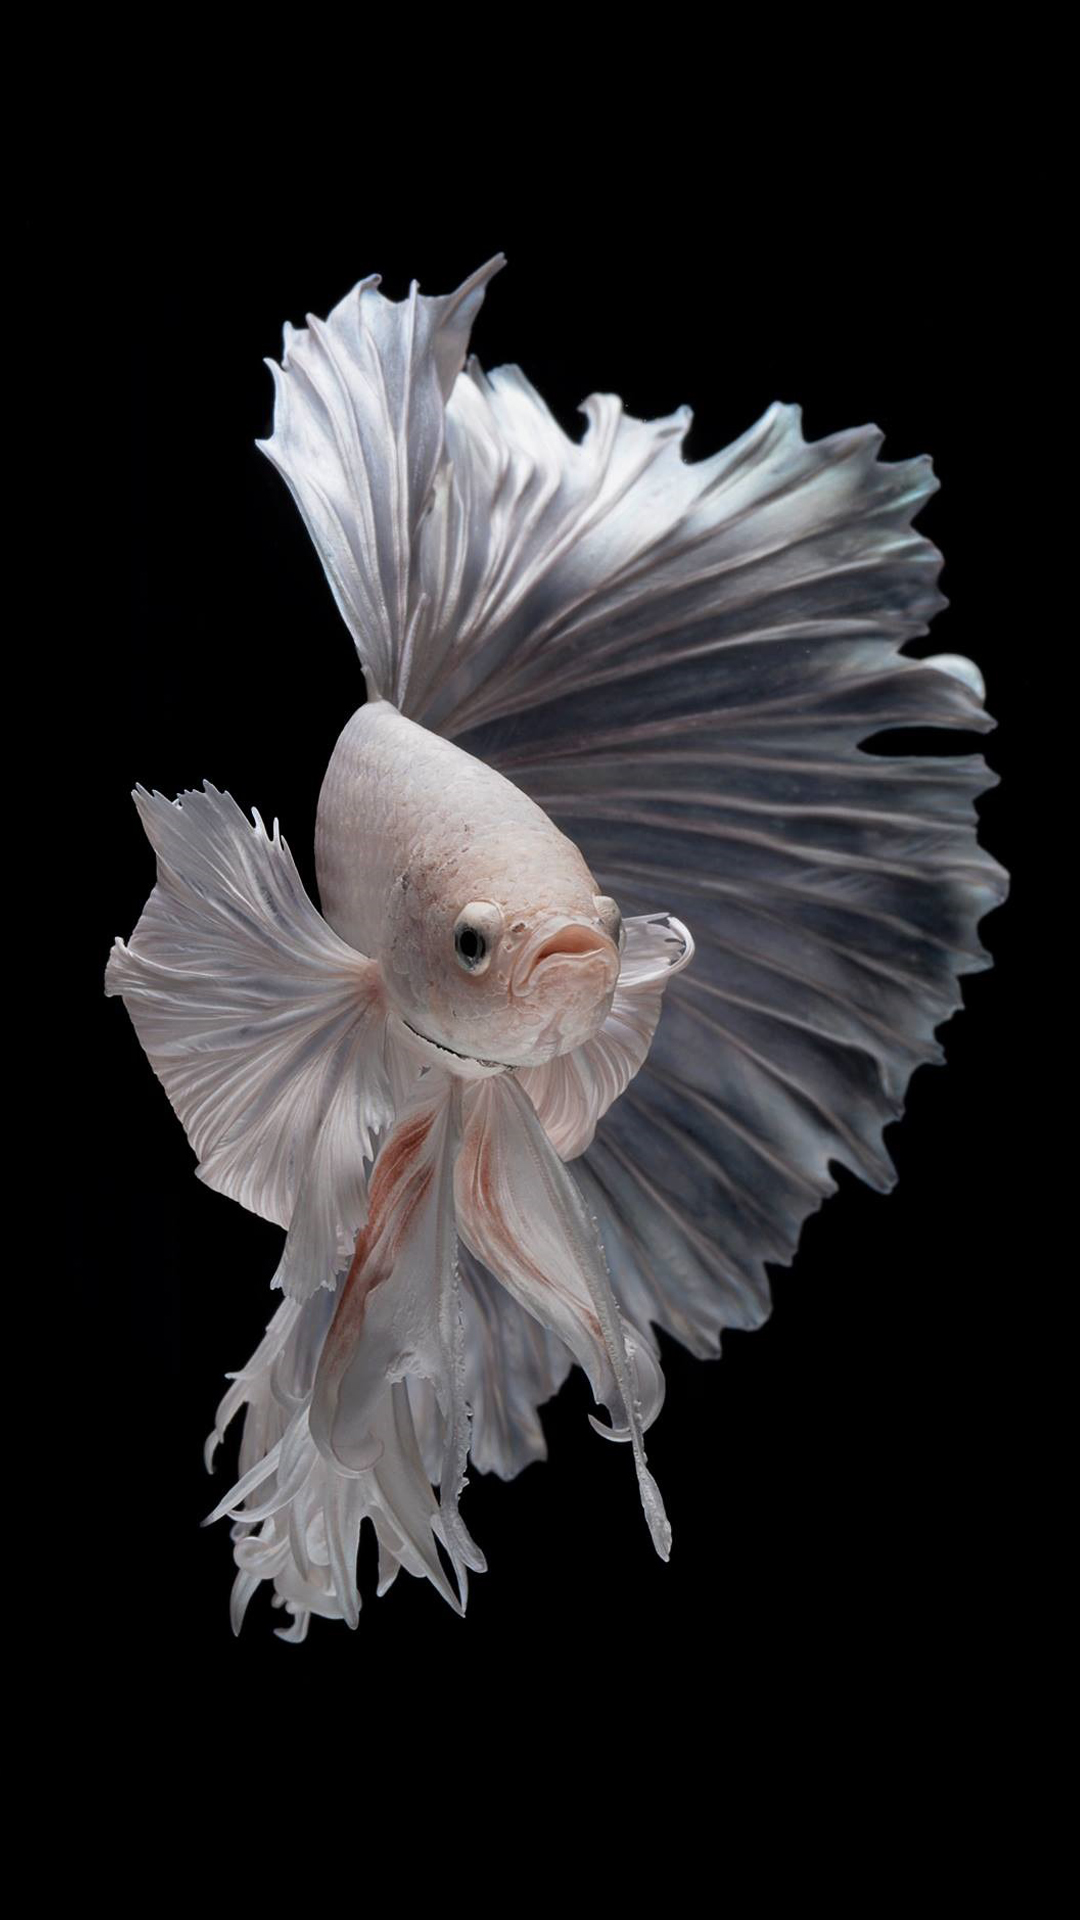 3d Koi Live Wallpaper Free Wallpaper For Iphone 7 Plus With Albino Betta Fish